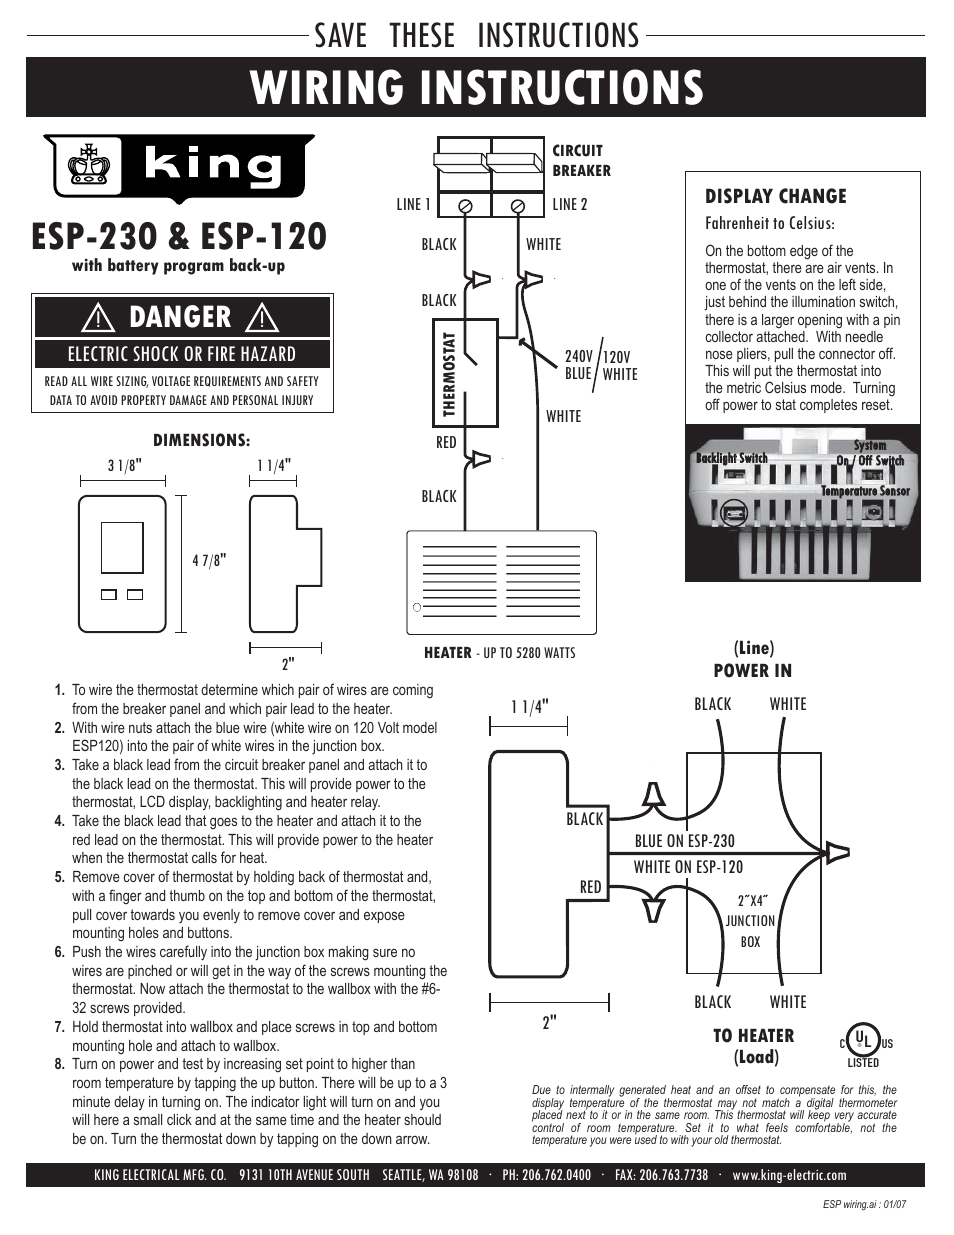 Wiring Instructions Save These Danger King Electric 120v Vs 240v Baseboard Heater Diagram Esp Electronic Programmable User Manual Page 3 4